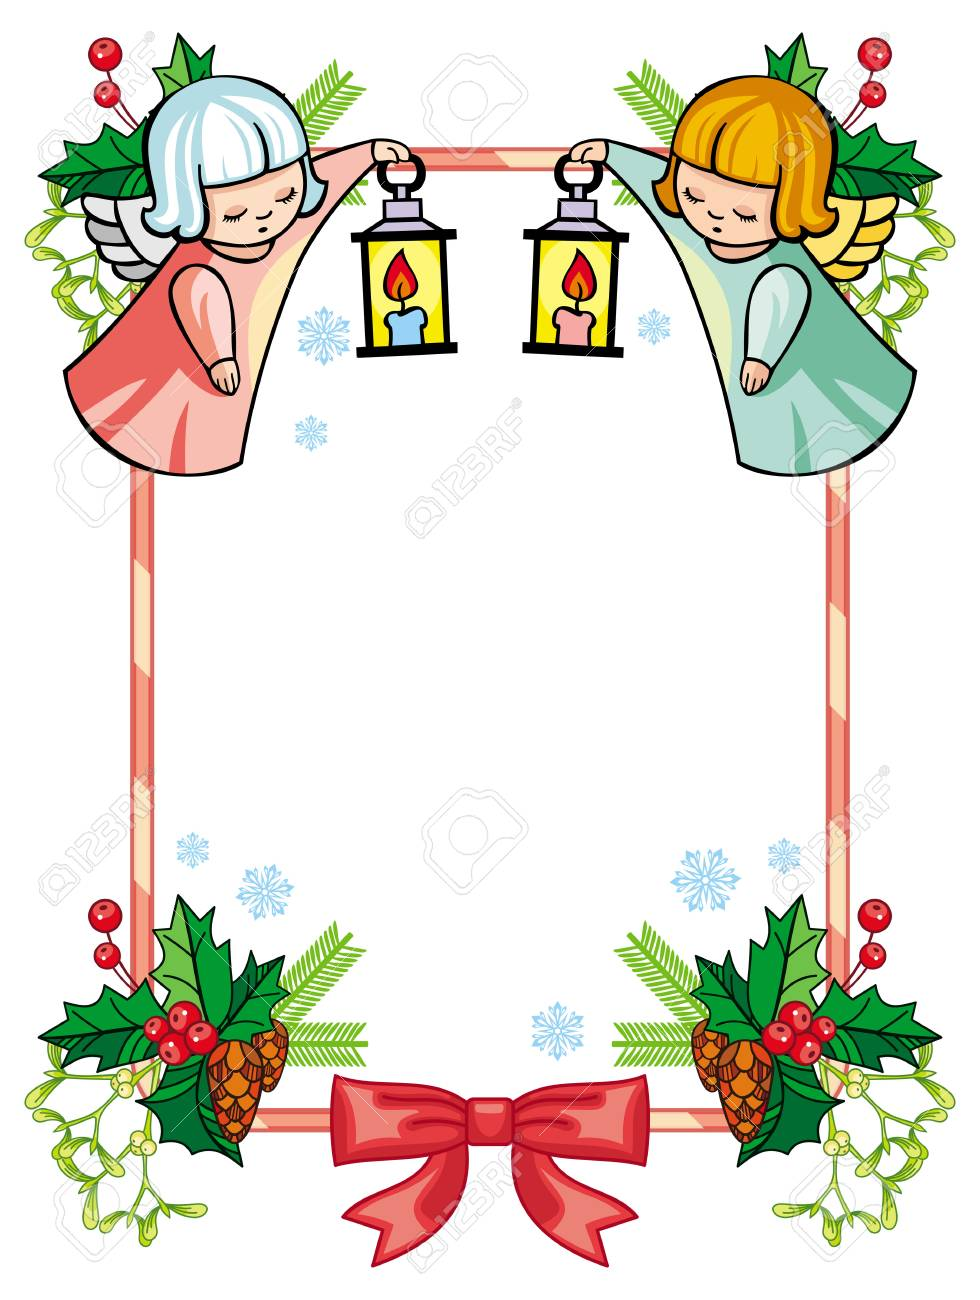 Christmas Frame Clipart.Christmas Frame With Cute Angels Copy Space Christmas Holiday